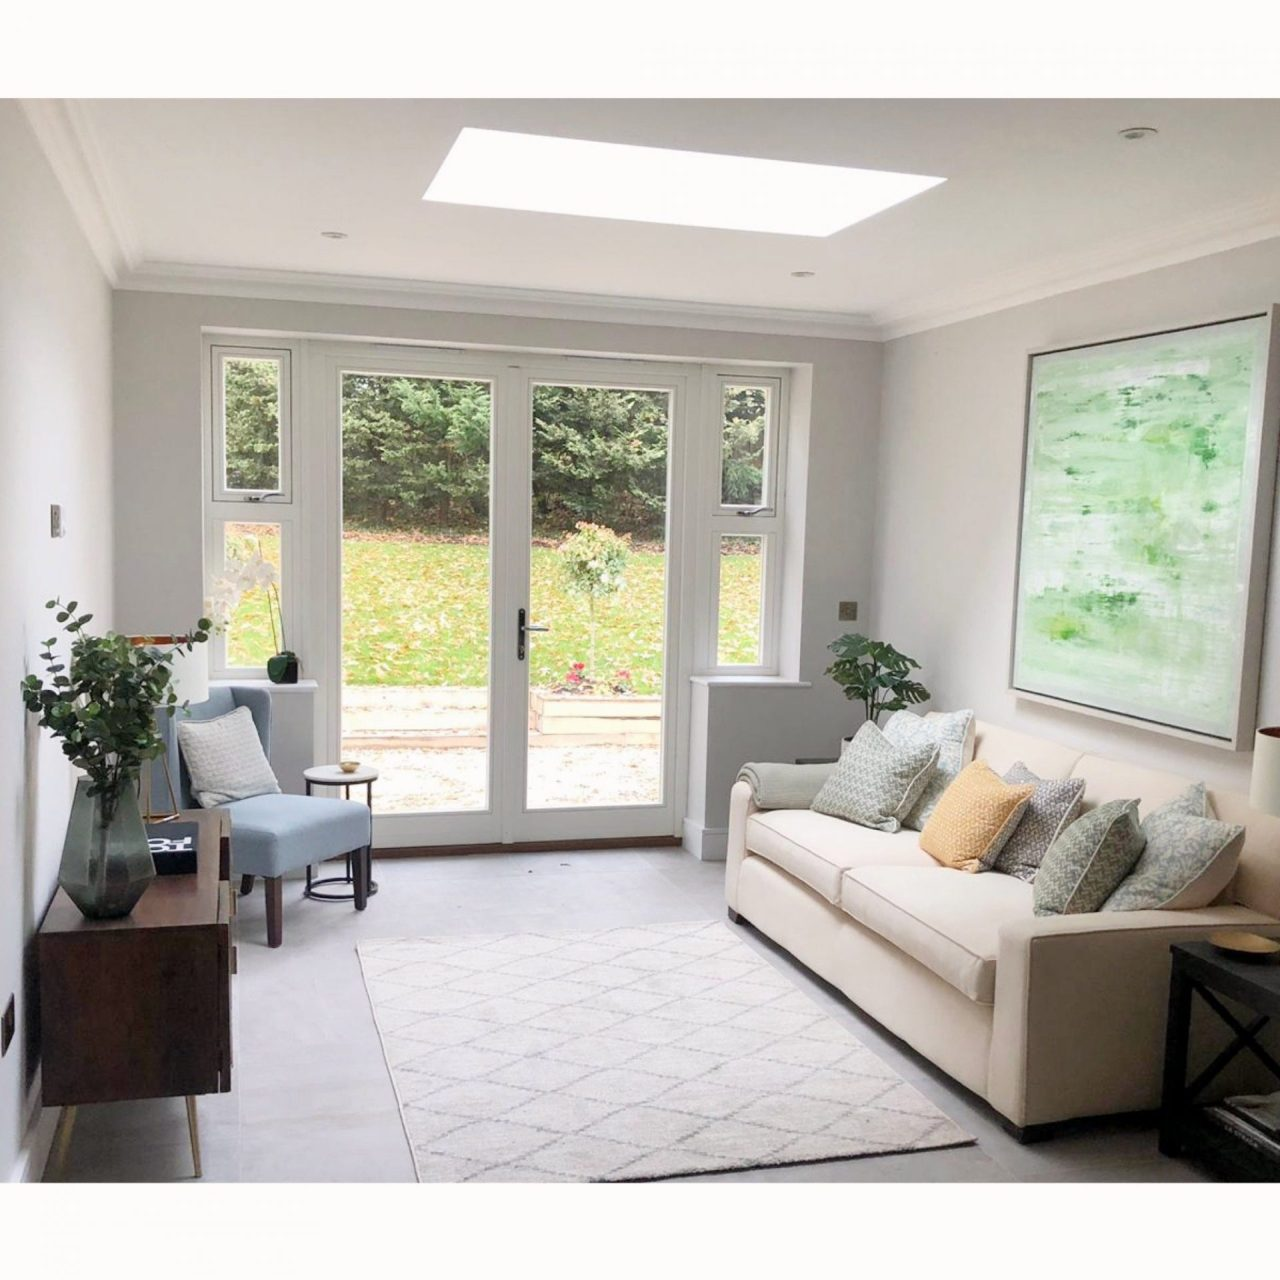 Property dressing for new build homes in West Sussex